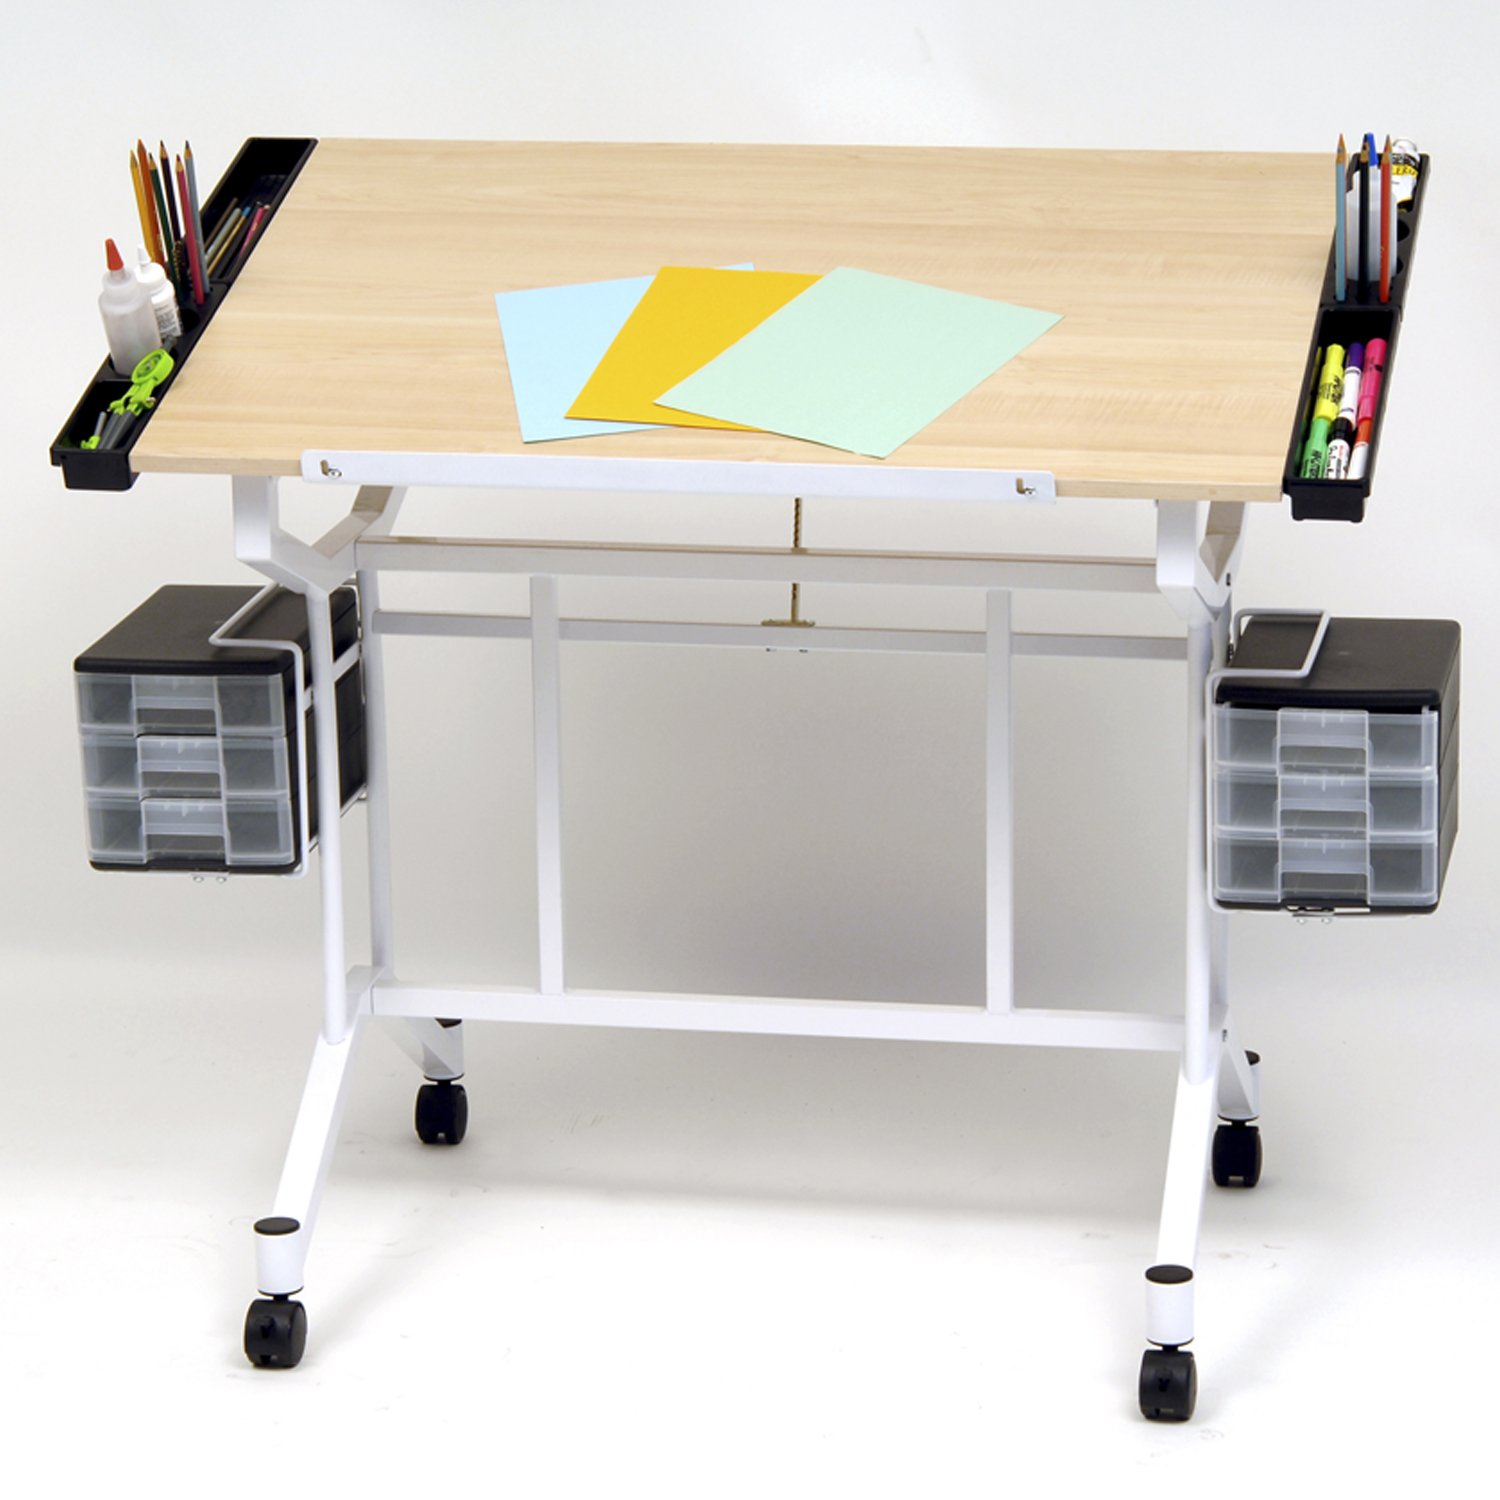 Studio Designs Pro Craft Station (White - Maple)